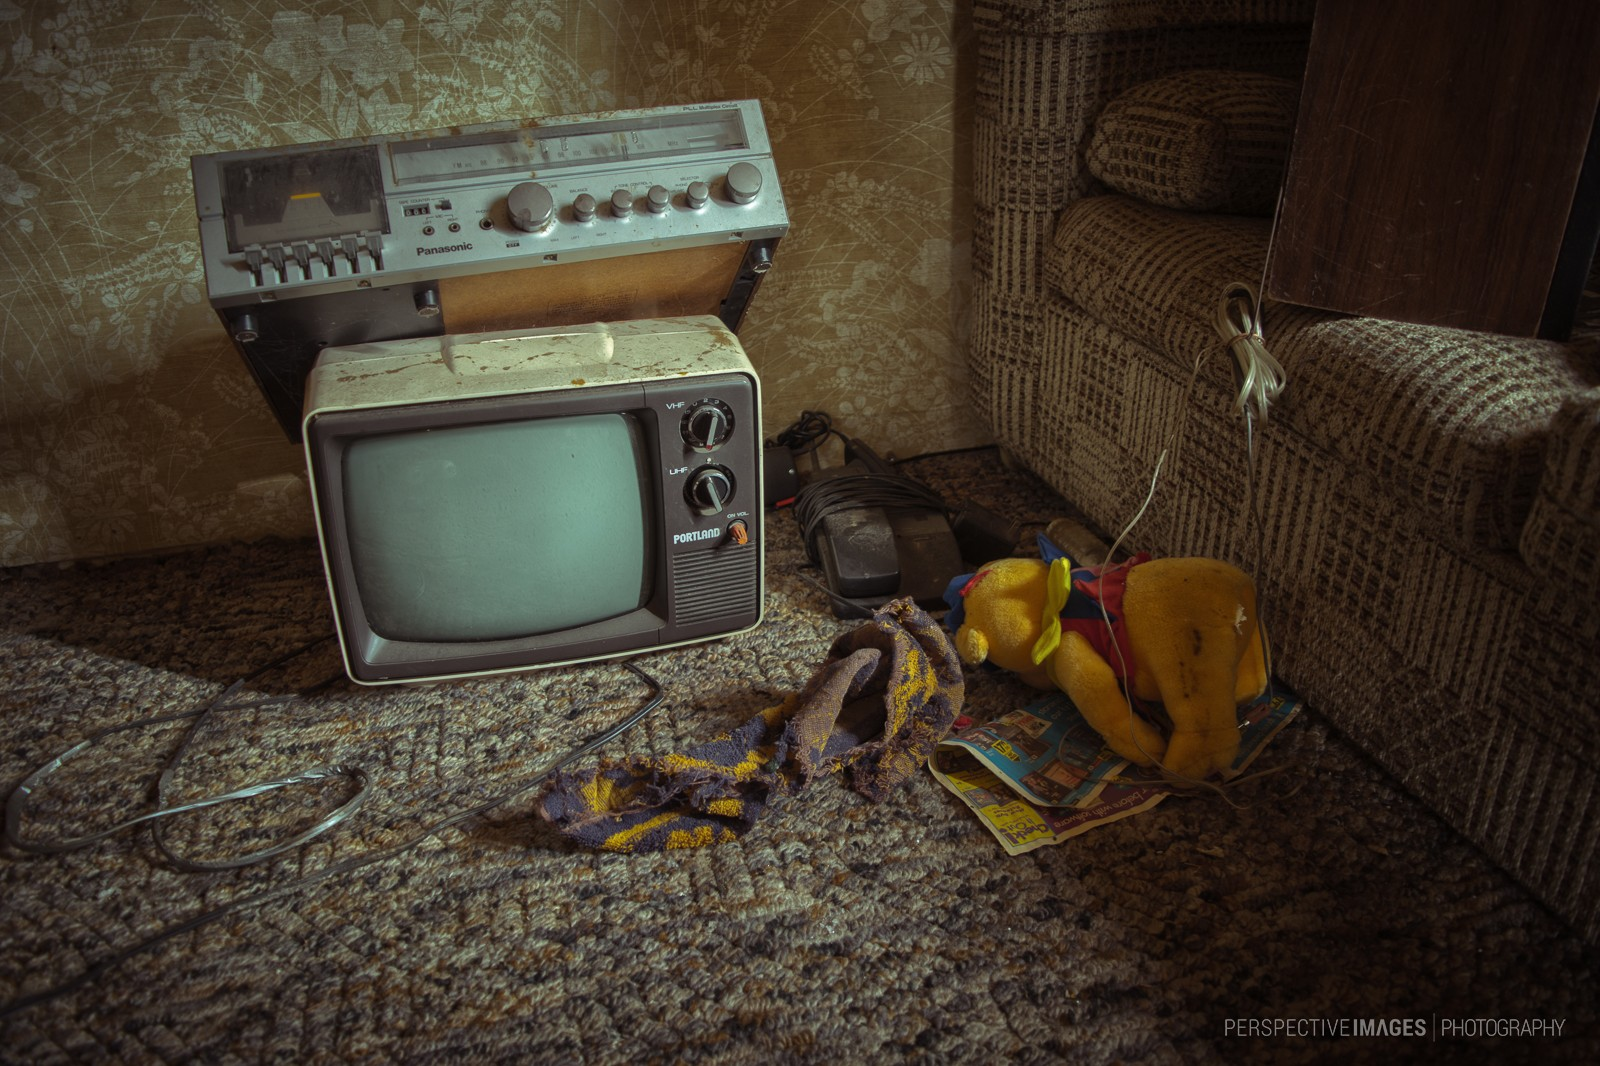 Nothing Worth Watching - 80's era television and tape deck at an abandoned mountain home.